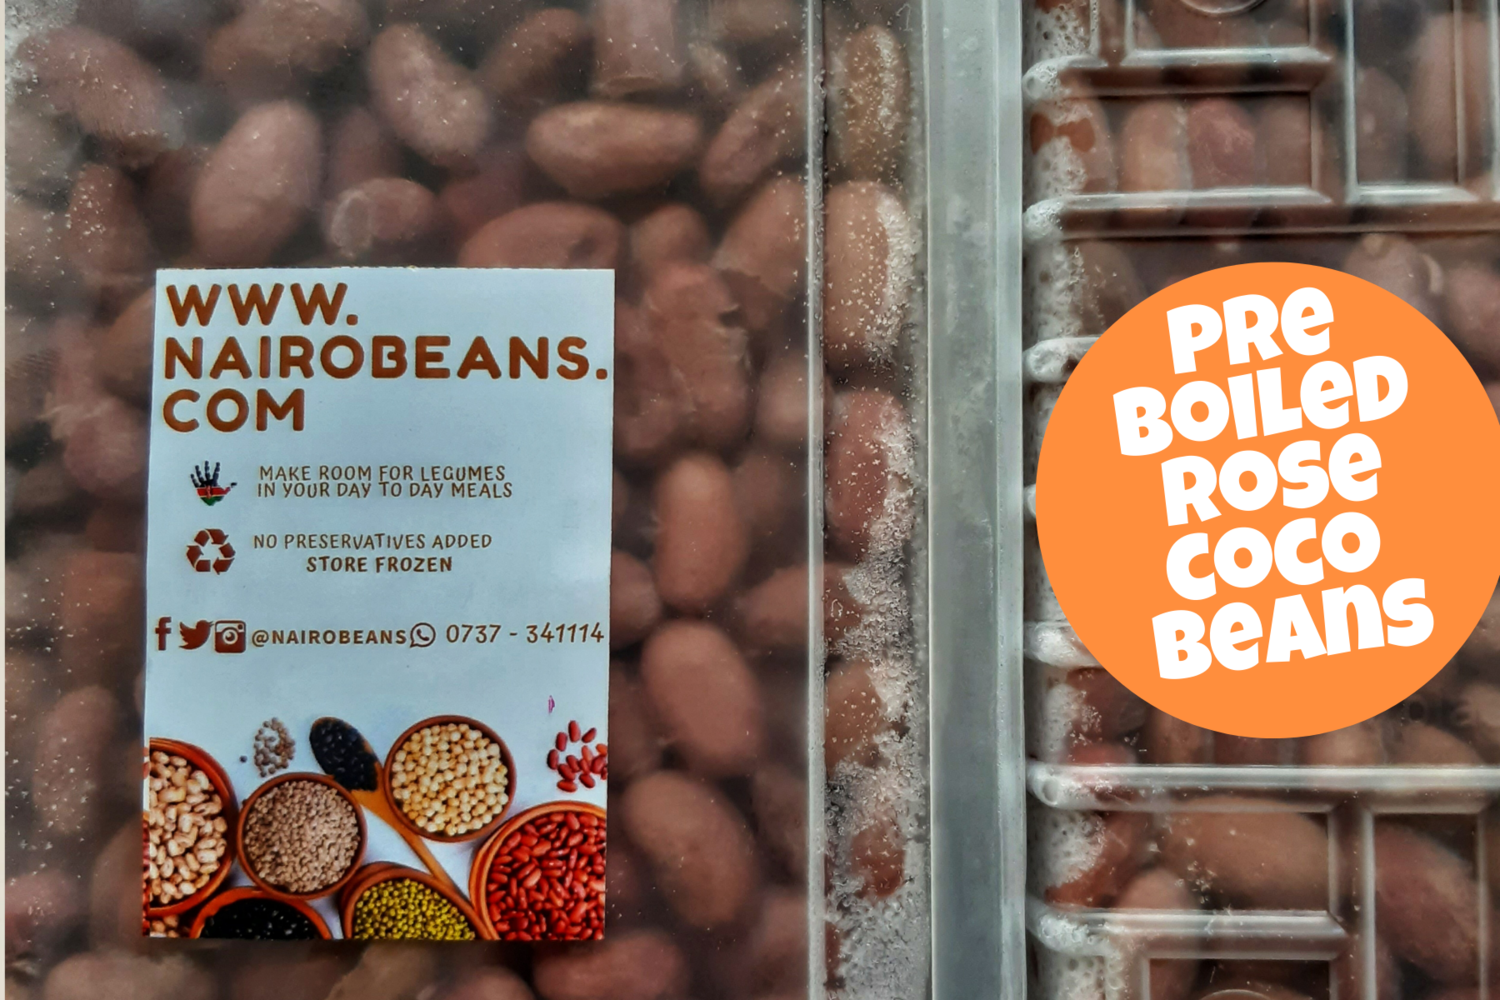 Pre Boiled Rose coco beans 500g pack